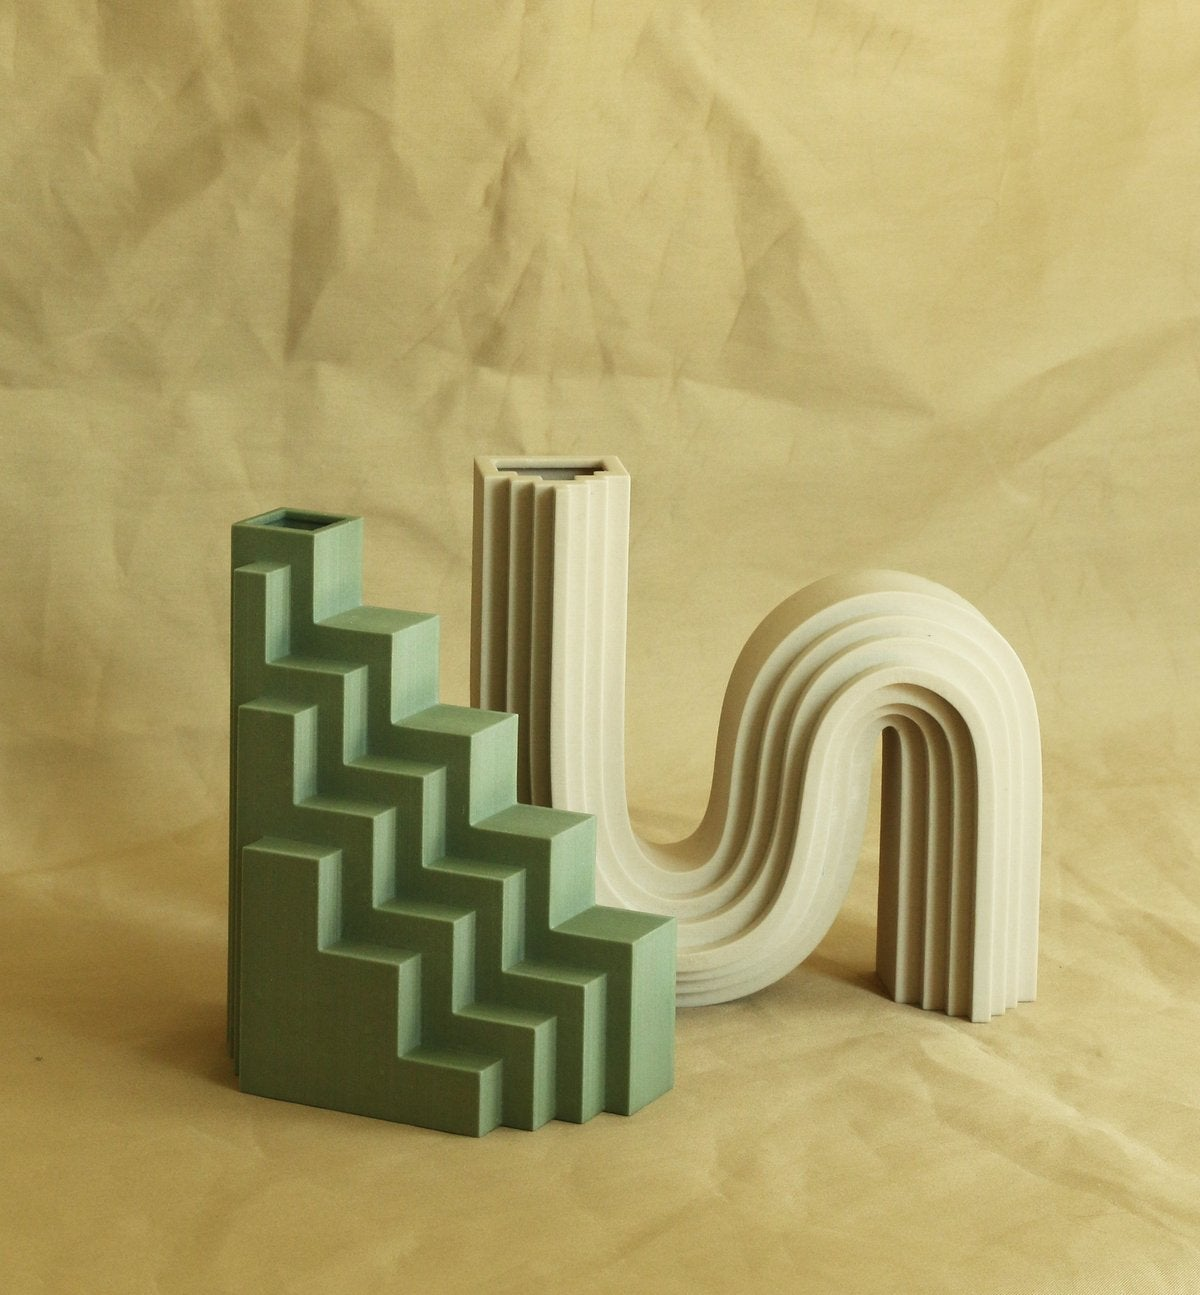 Staircase-BY-CHARLOTTE-TAYLOR-X-UNIQUE-BOARD—LIMITED-EDITION-3D-PRINTED-VASES-20190330000724